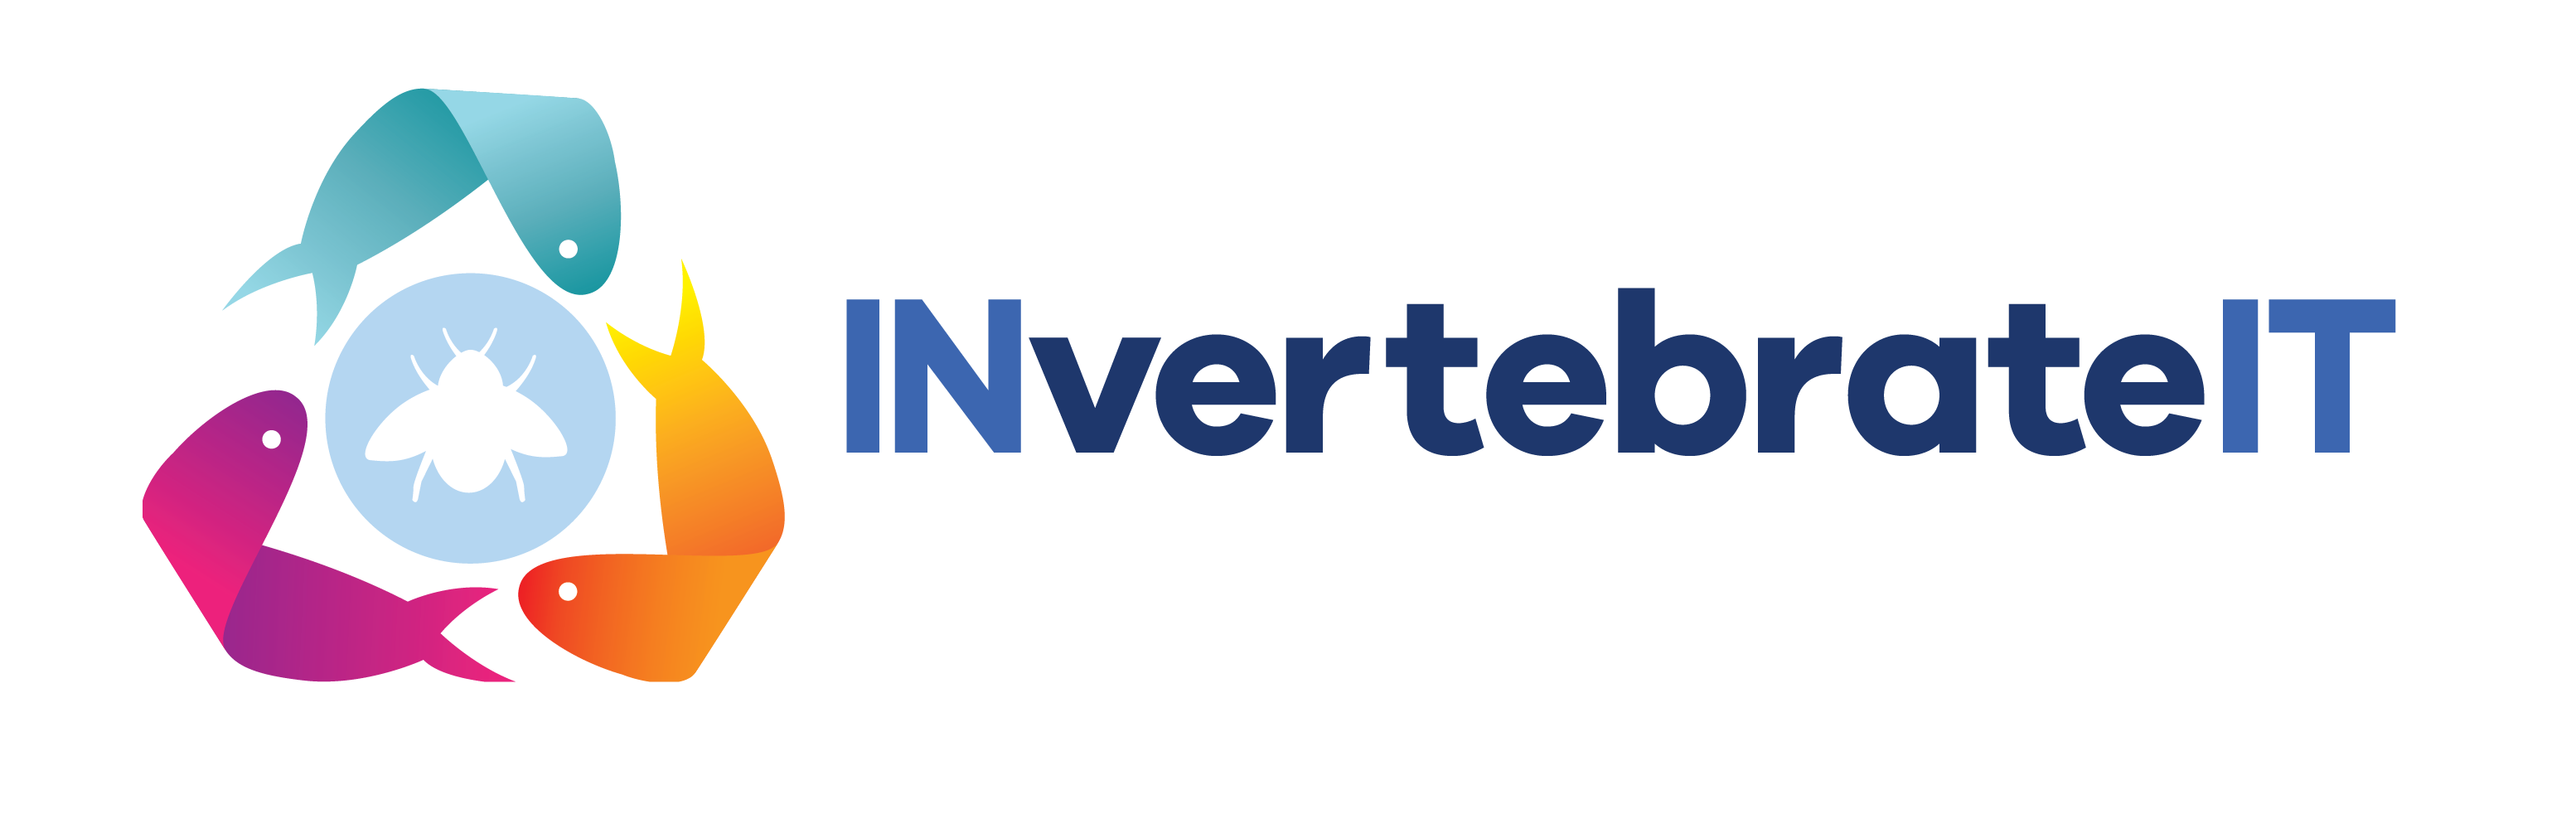 INvertebrateIT connects aquaculture stakeholders to exploit invertebrate-based solutions for sustainable feed